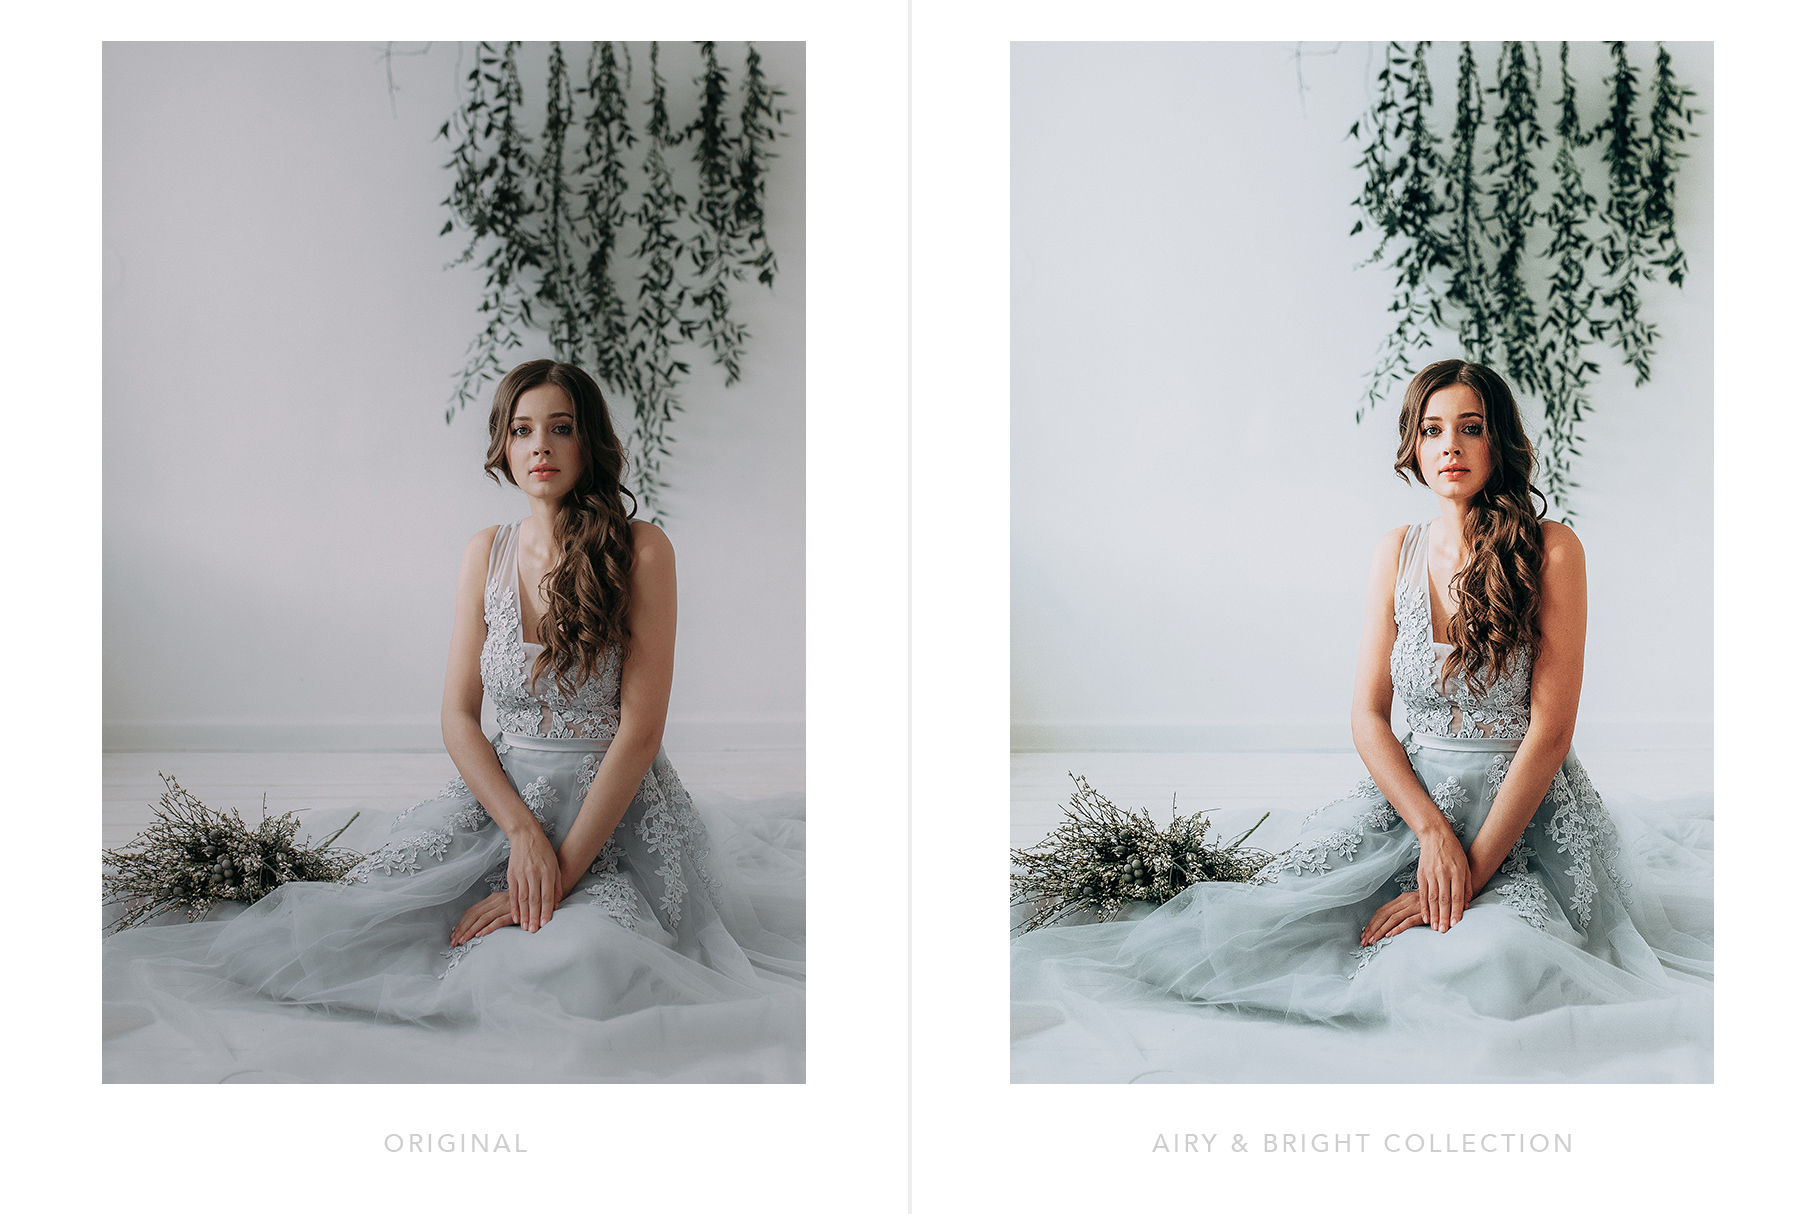 Bright-and-Airy-presets-lightroom.jpg